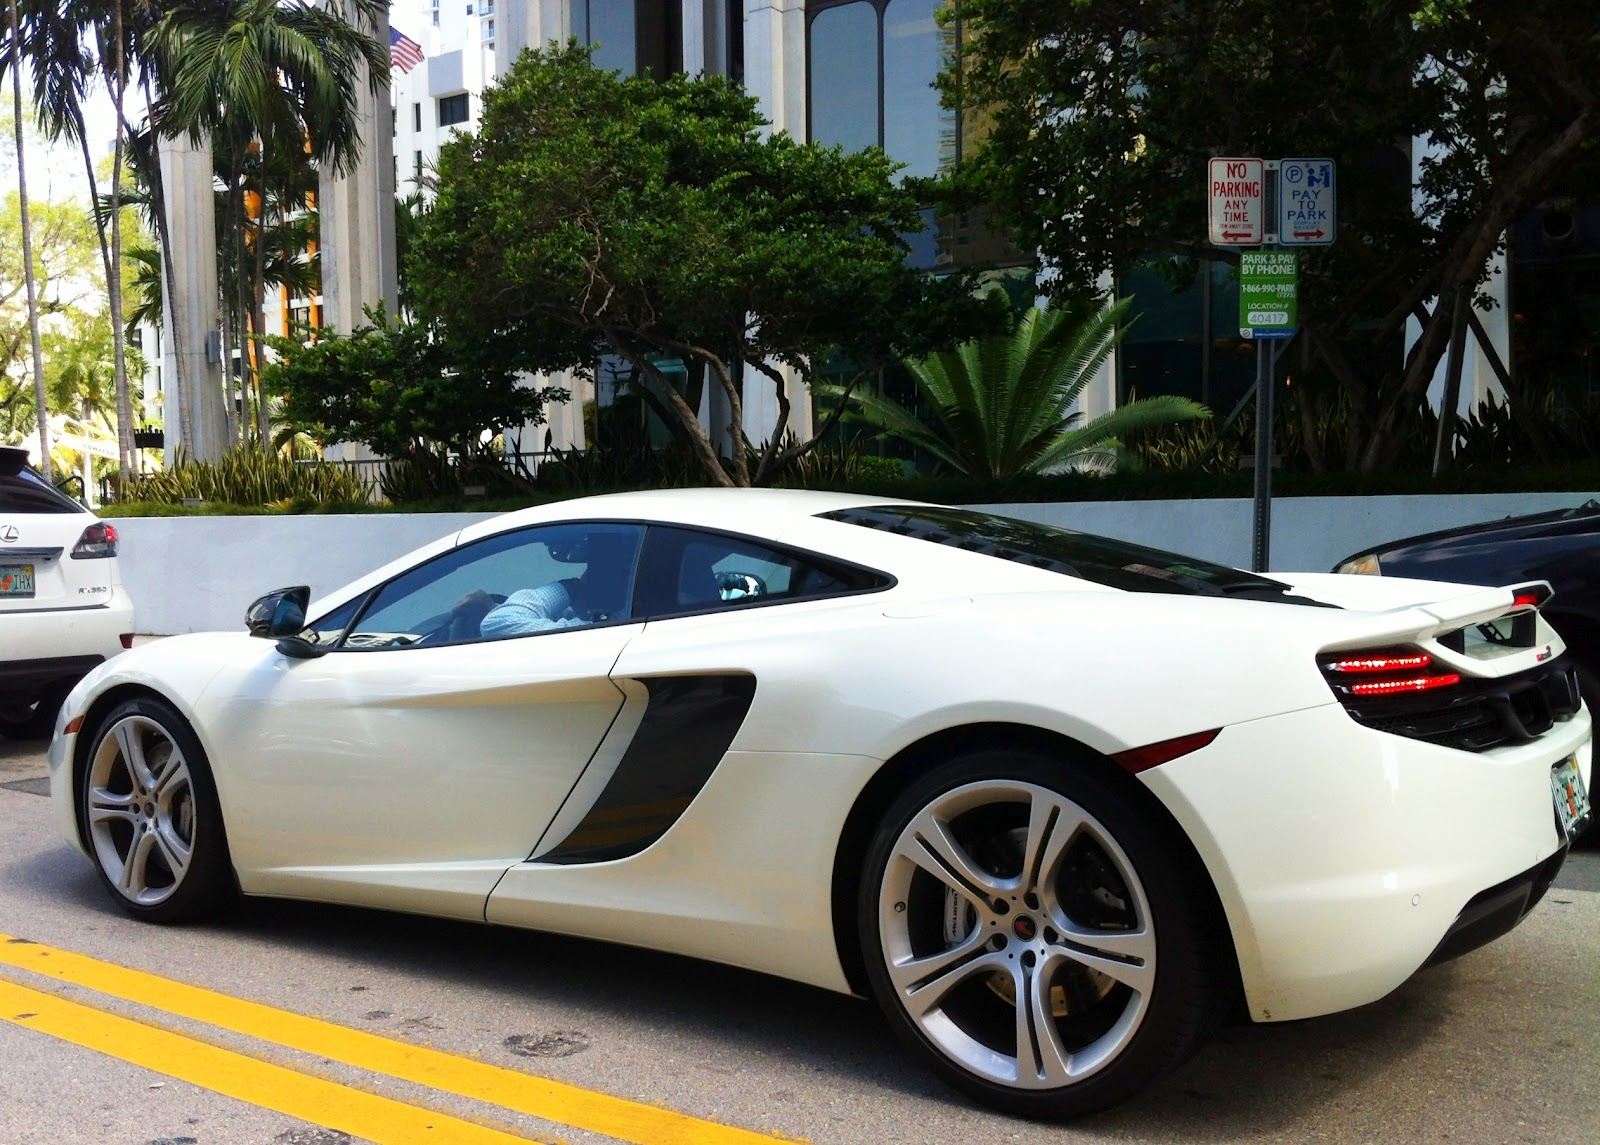 white mclaren mp4-12c on brickell ave | exotic cars on the streets